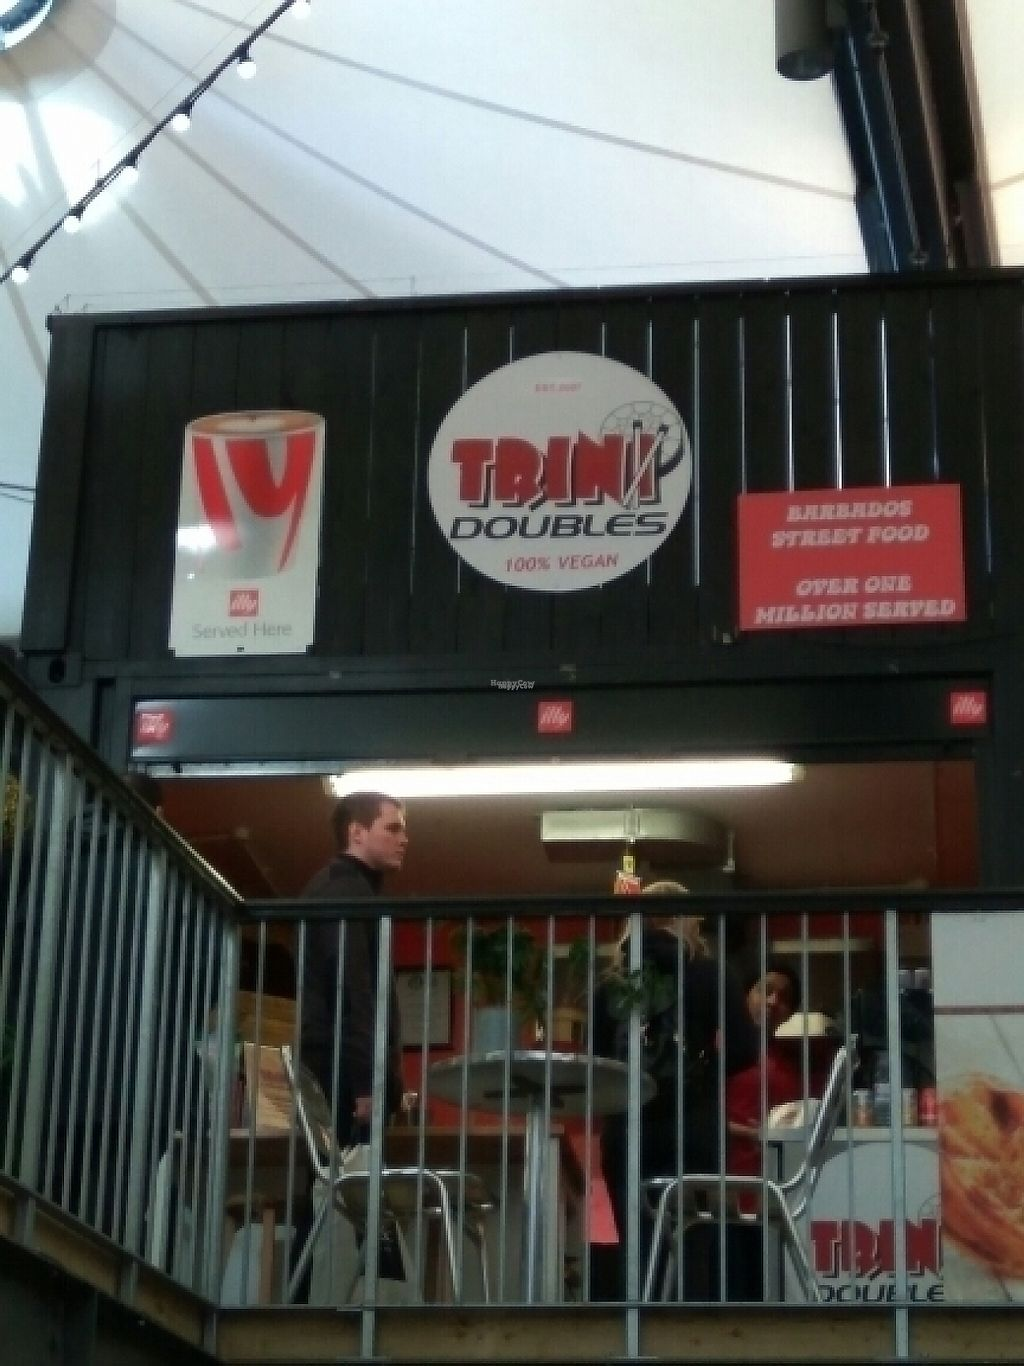 """Photo of CLOSED: Trini Doubles  by <a href=""""/members/profile/Miggi"""">Miggi</a> <br/>view from downstairs in market <br/> February 4, 2017  - <a href='/contact/abuse/image/79933/222007'>Report</a>"""